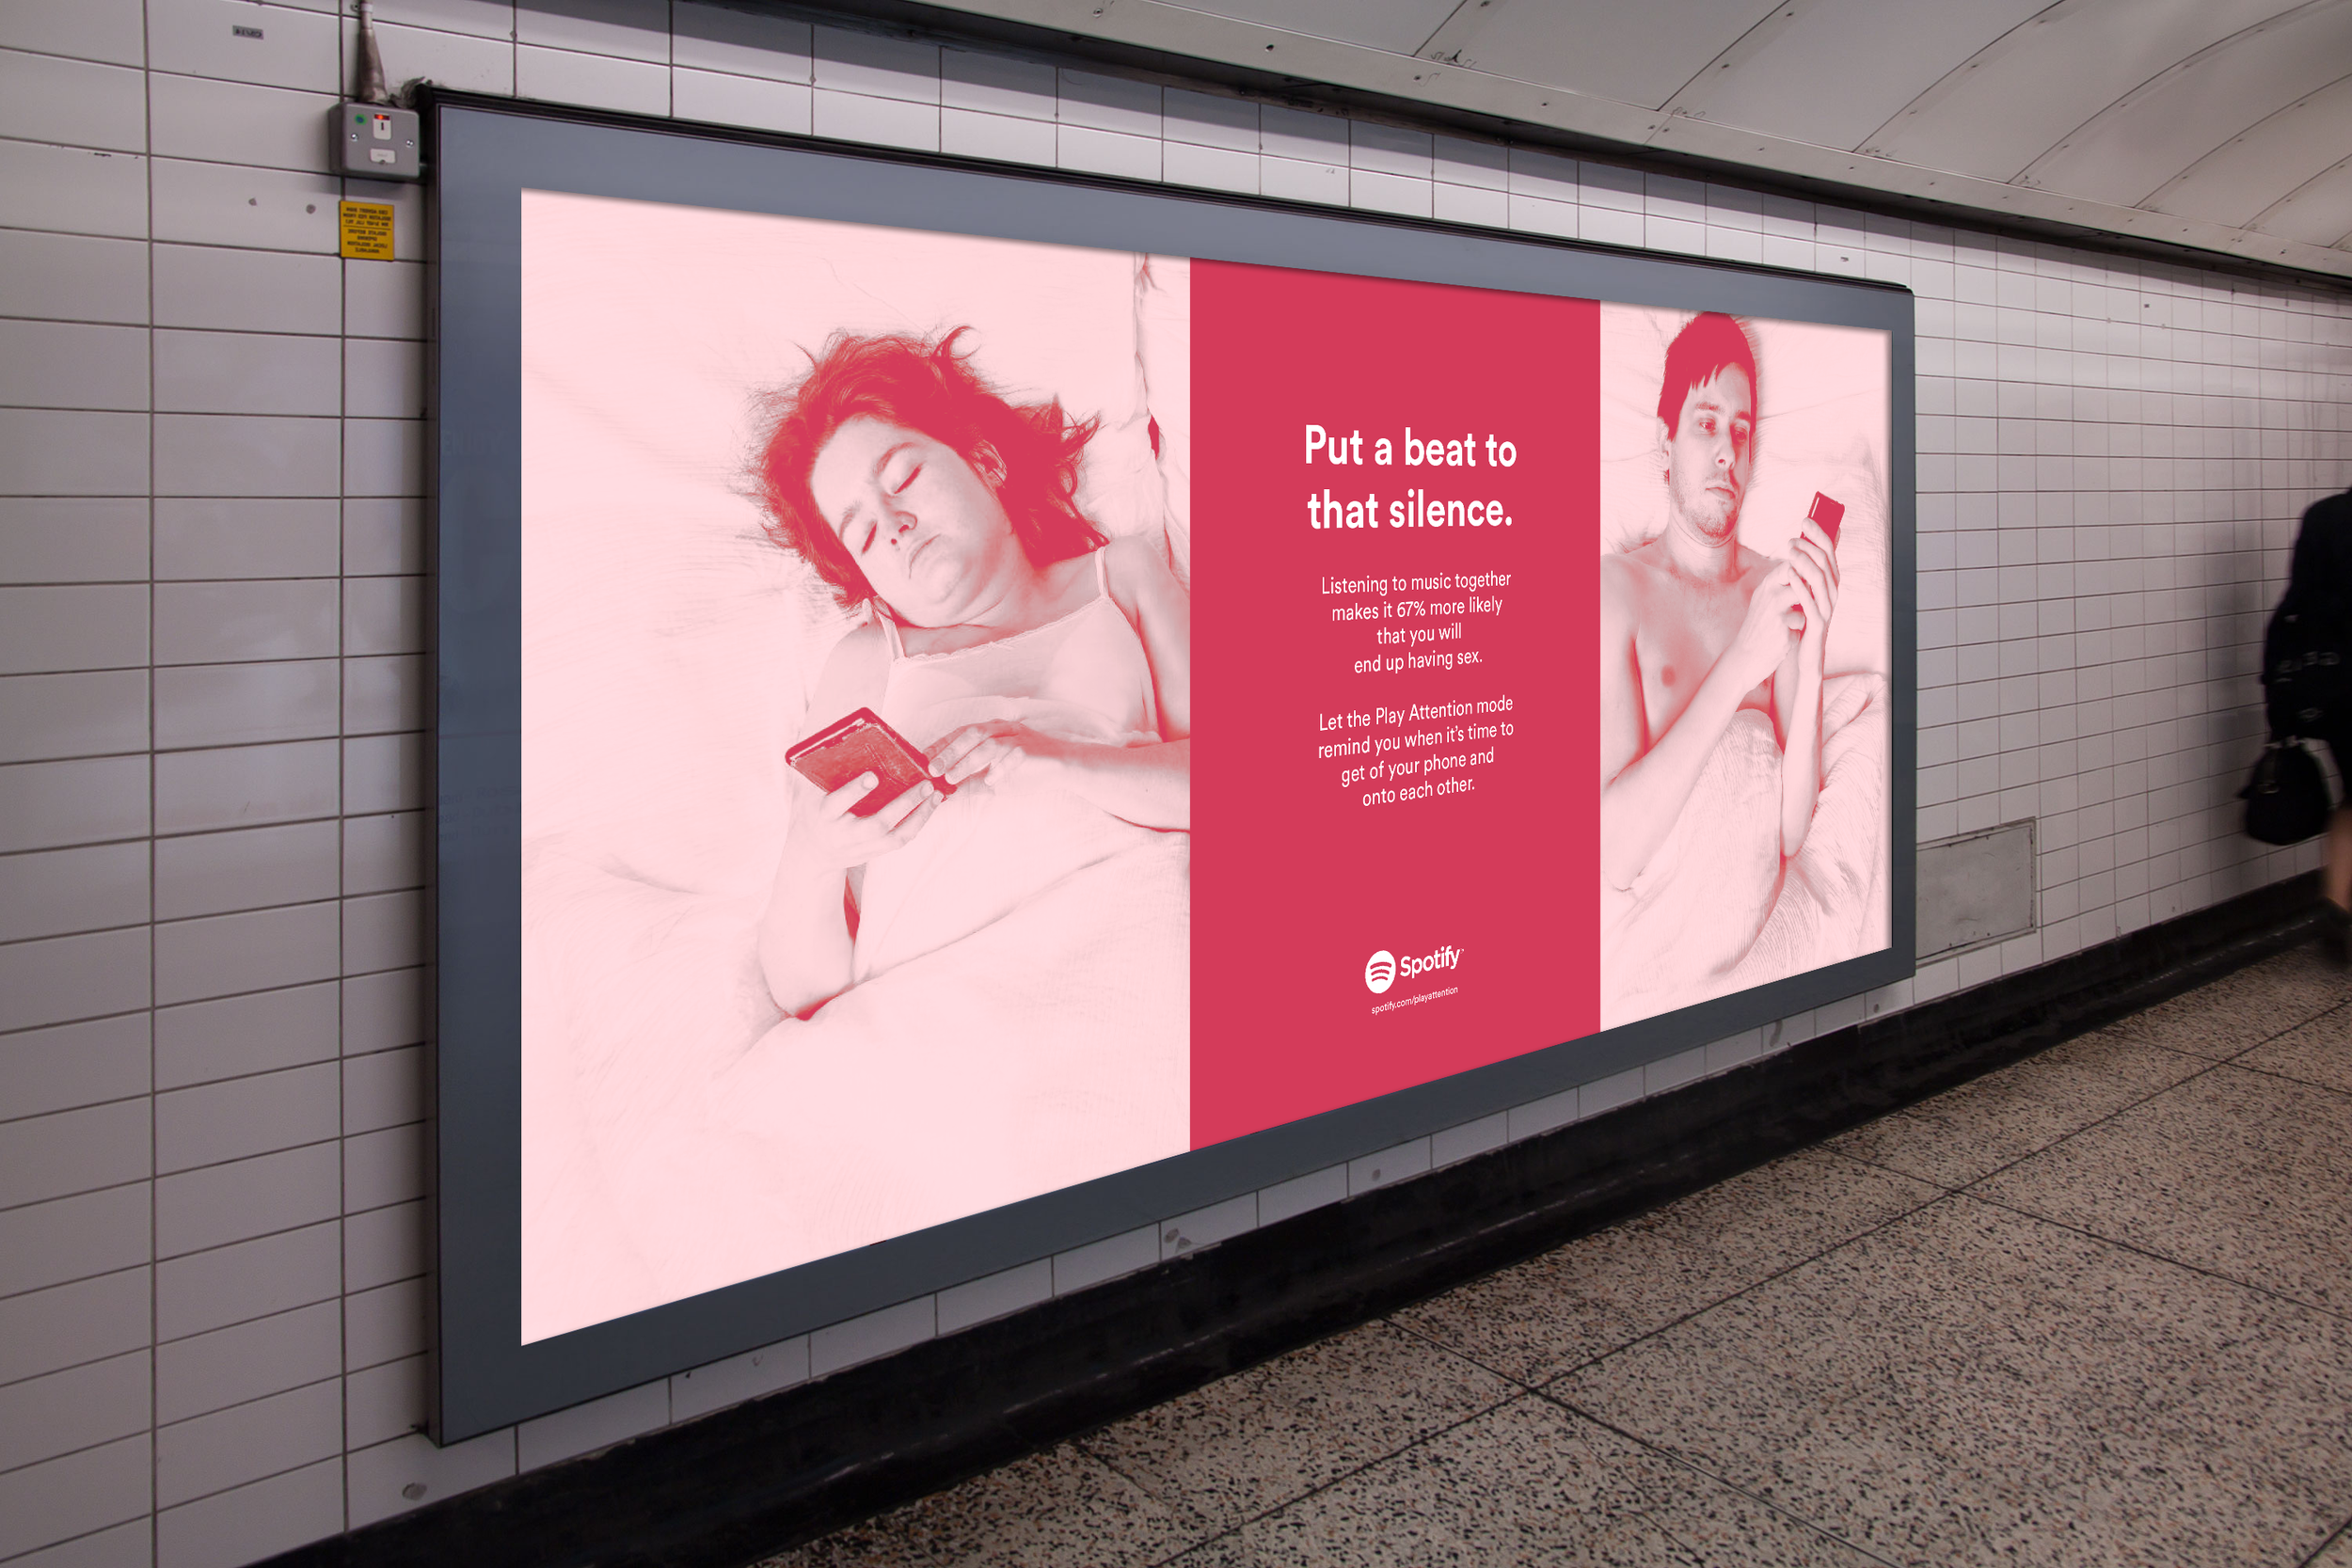 spotify_-london_underground_PRINTAD.png